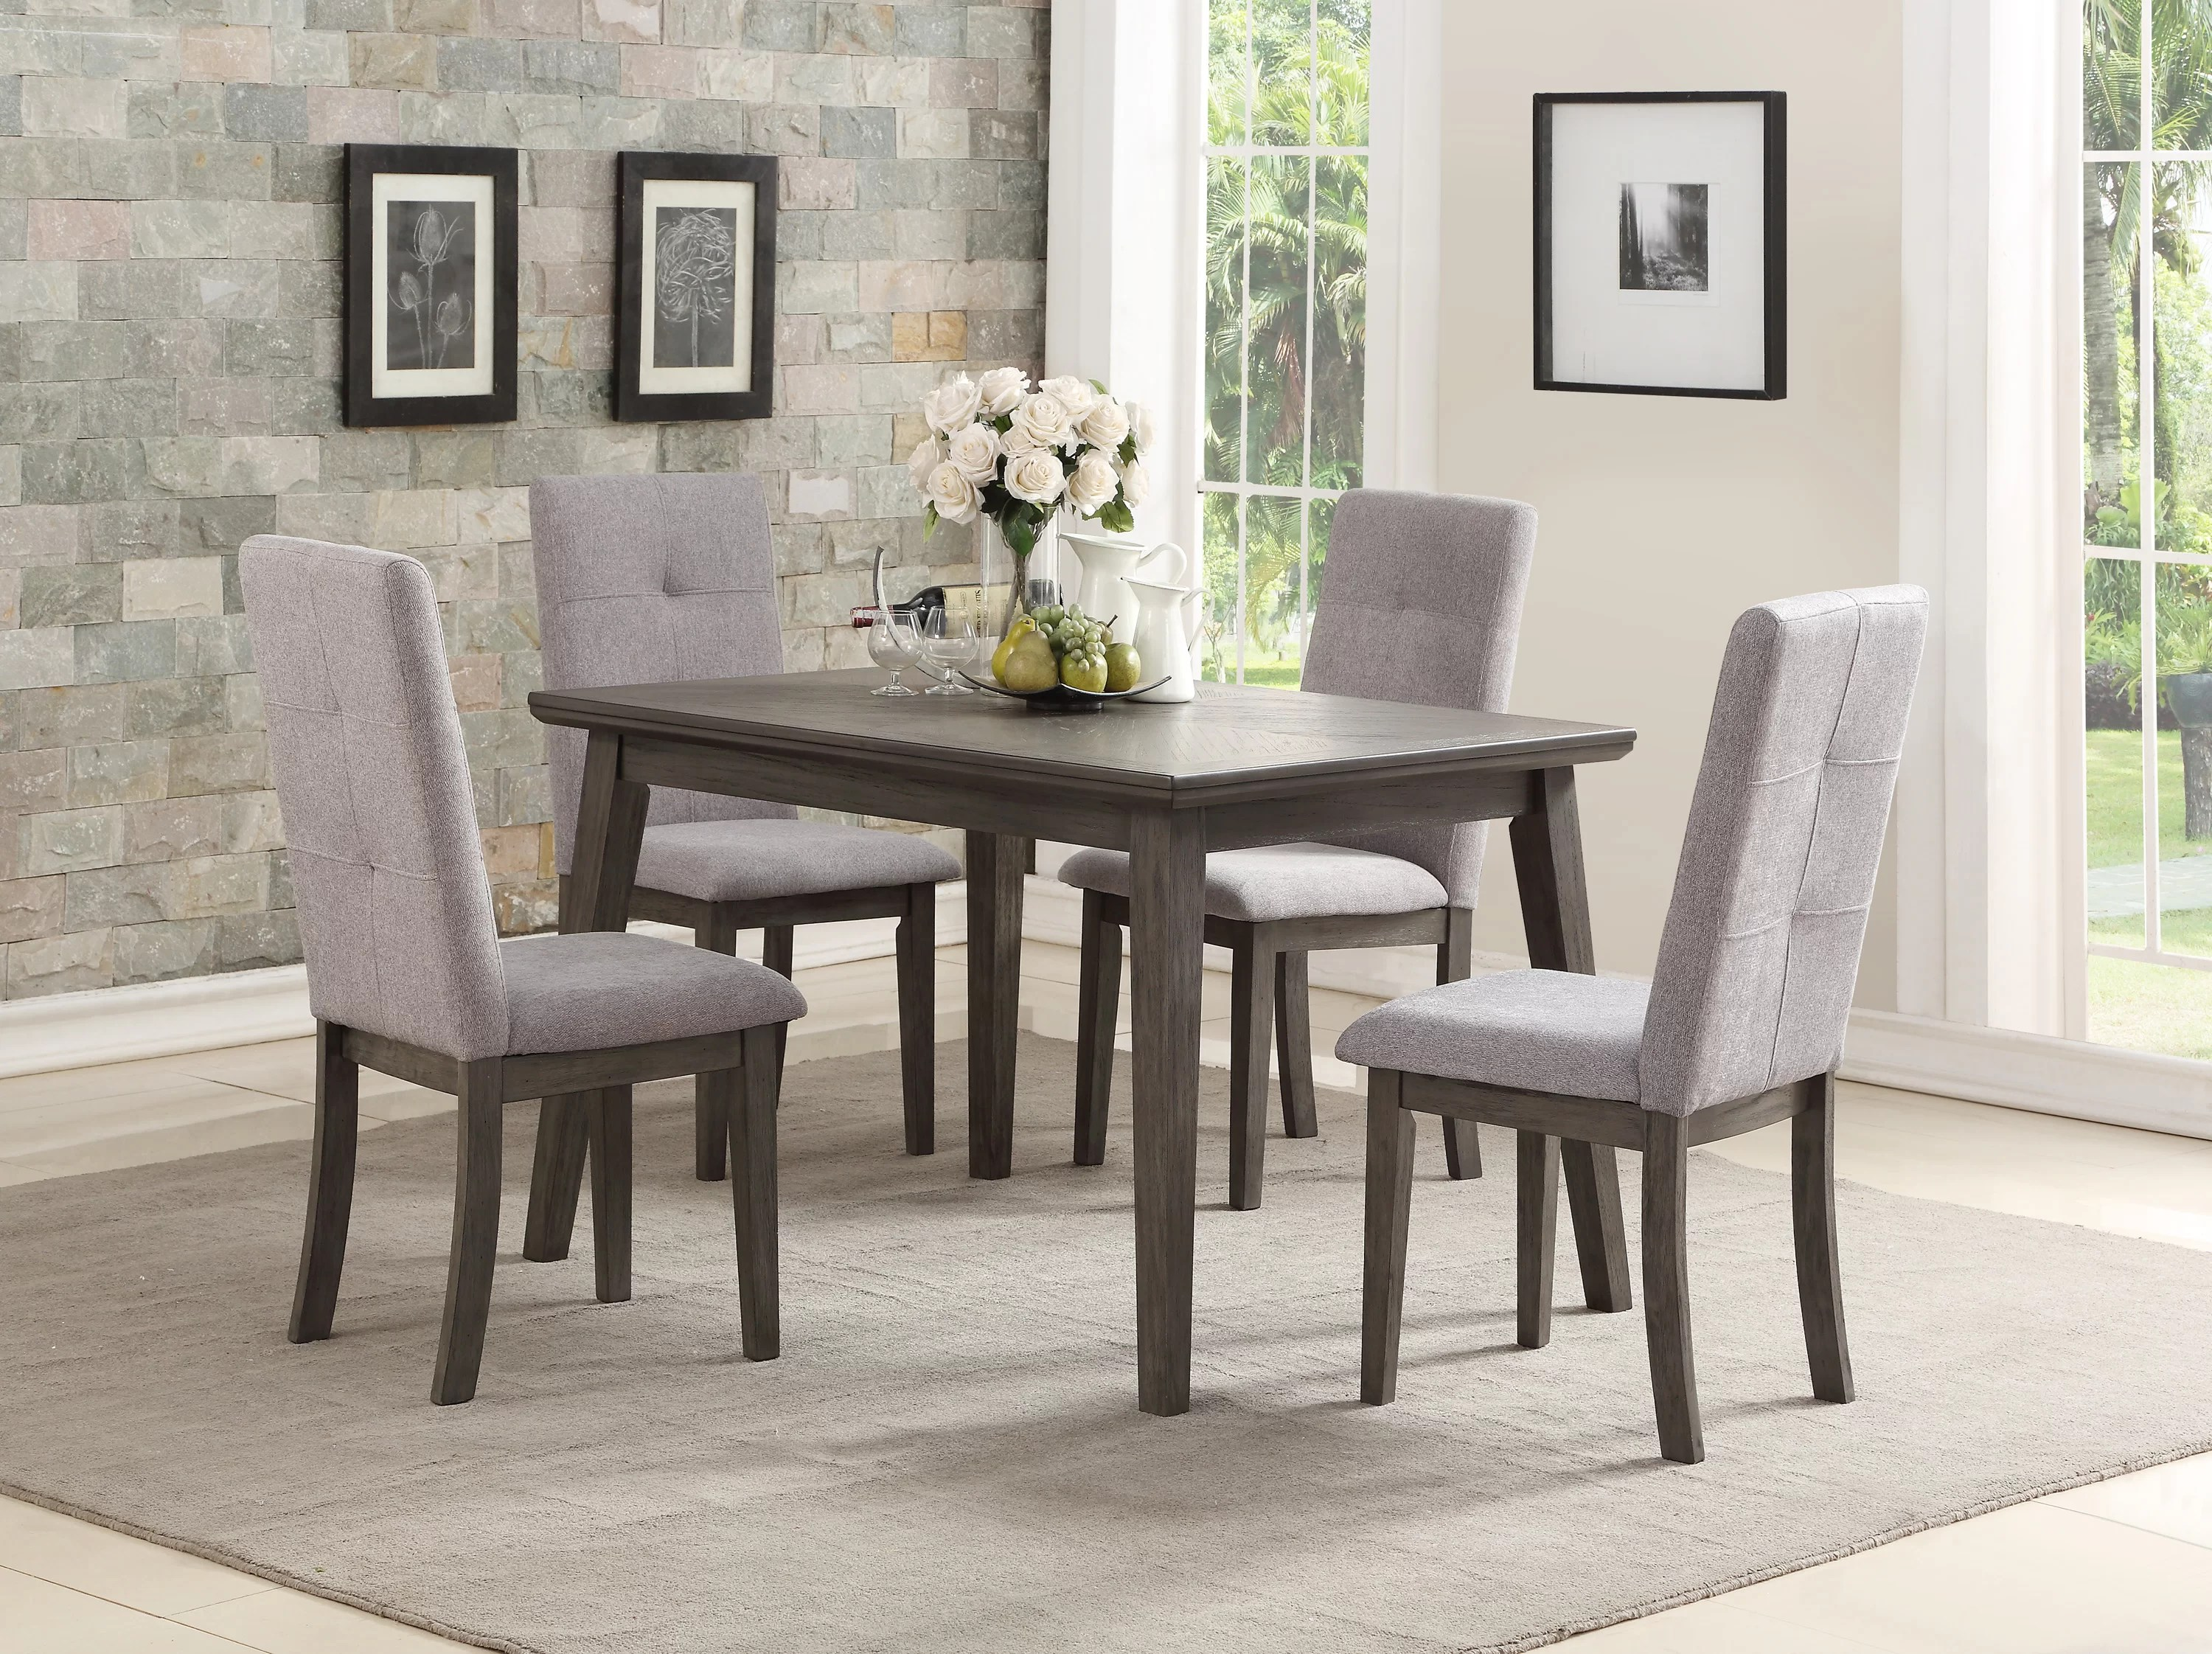 Dining Room Upholstered Chairs Graciela Upholstered Dining Chair